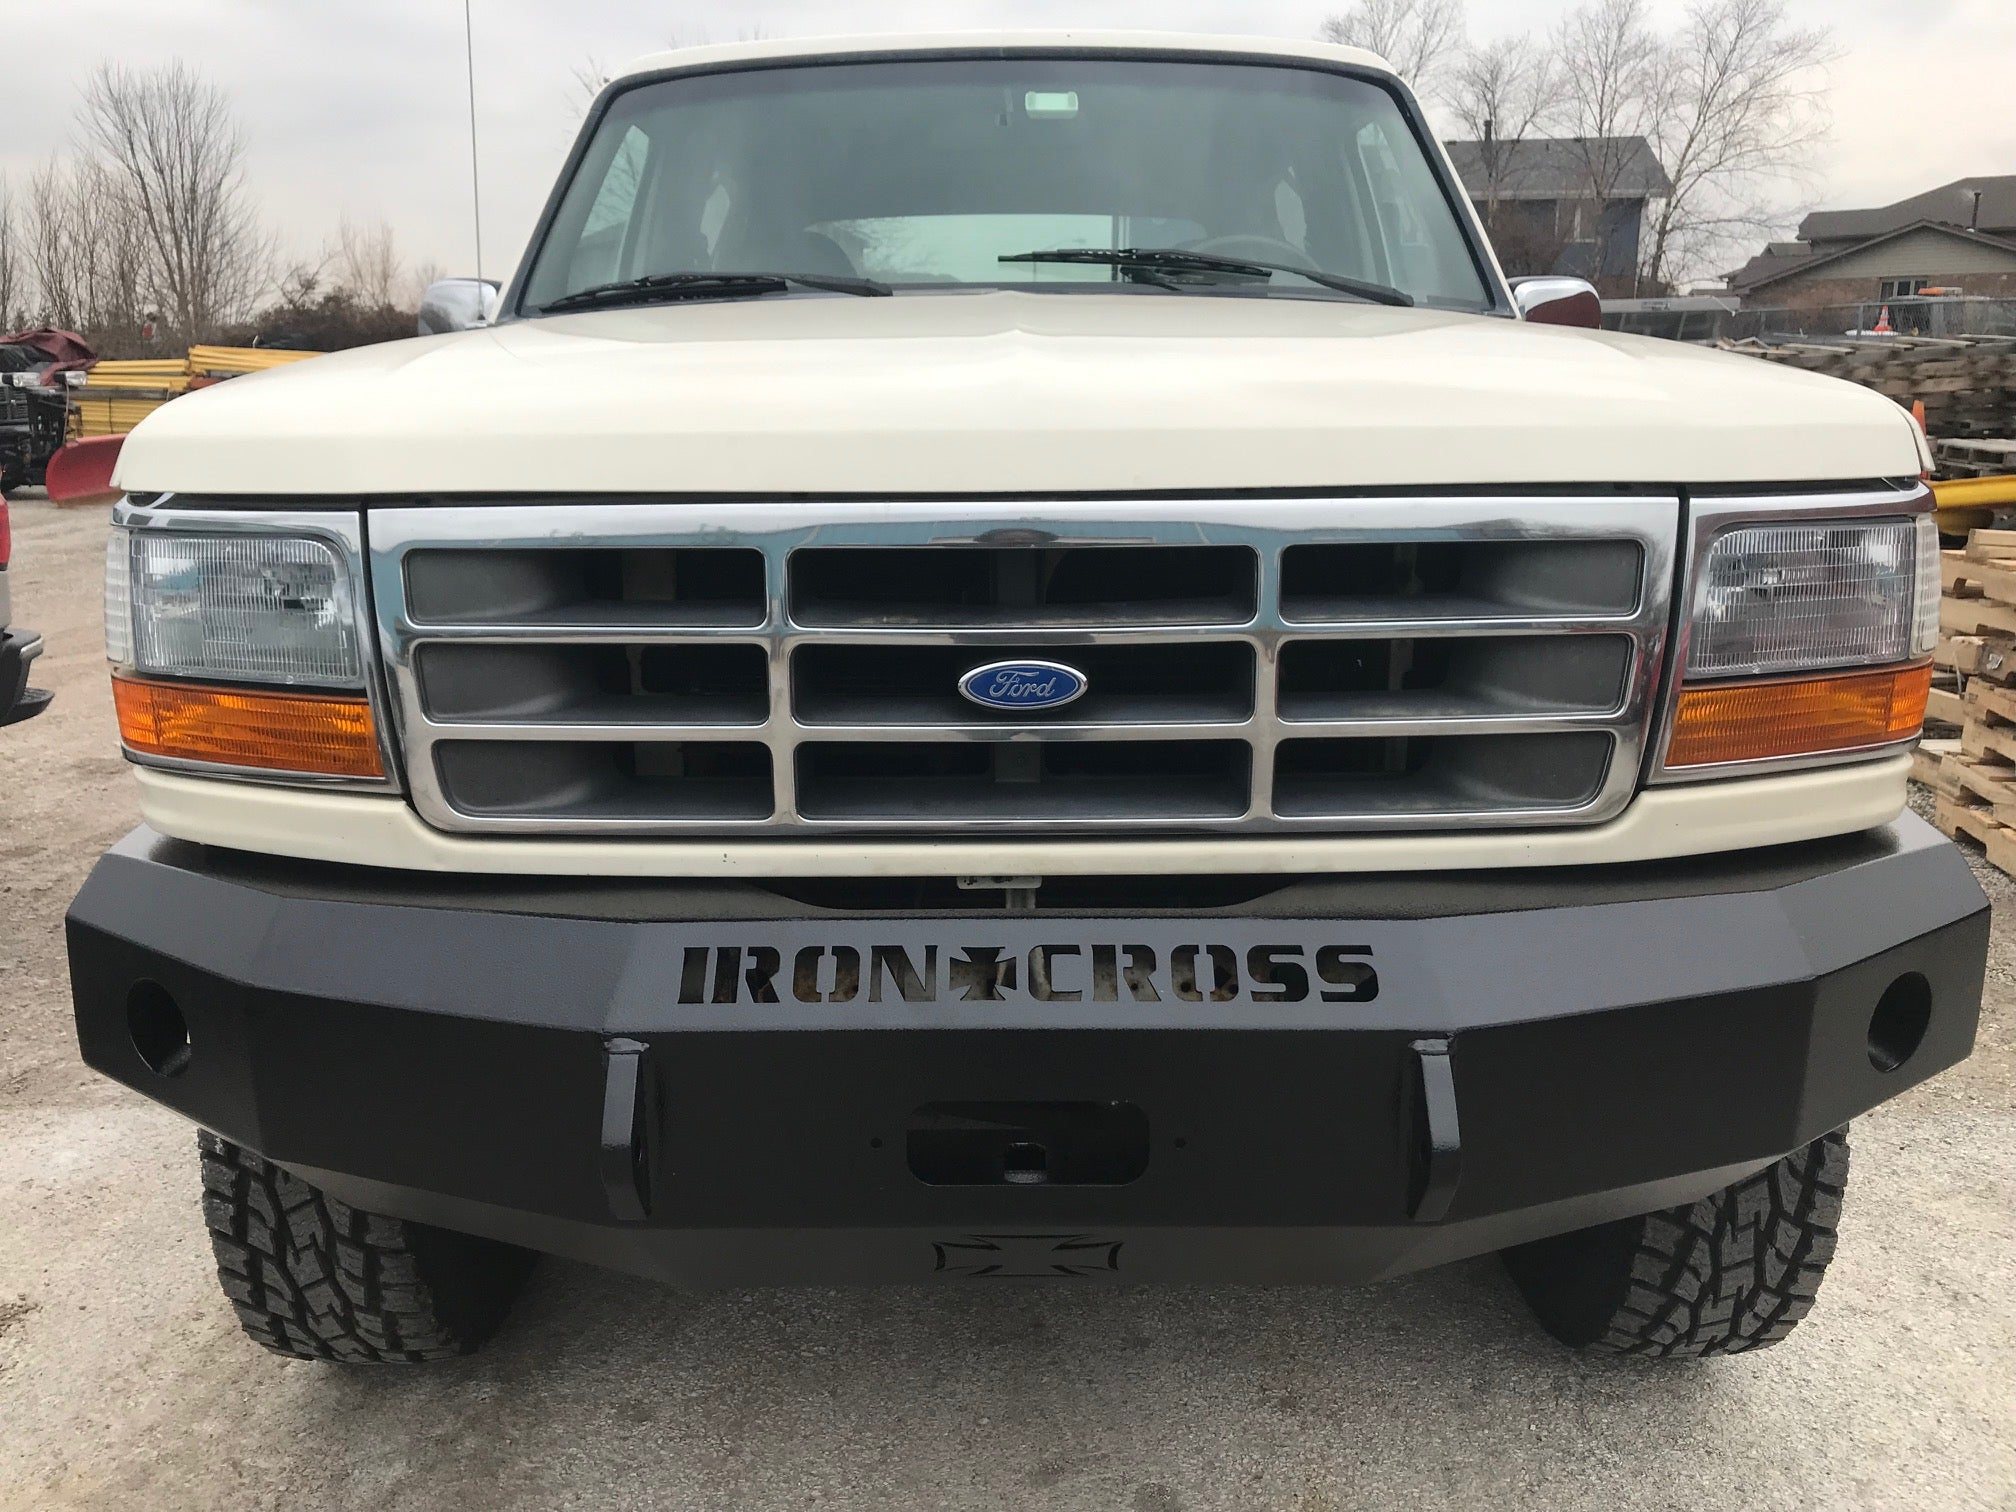 Iron Cross Aftermarket Off-road Bumper Installation